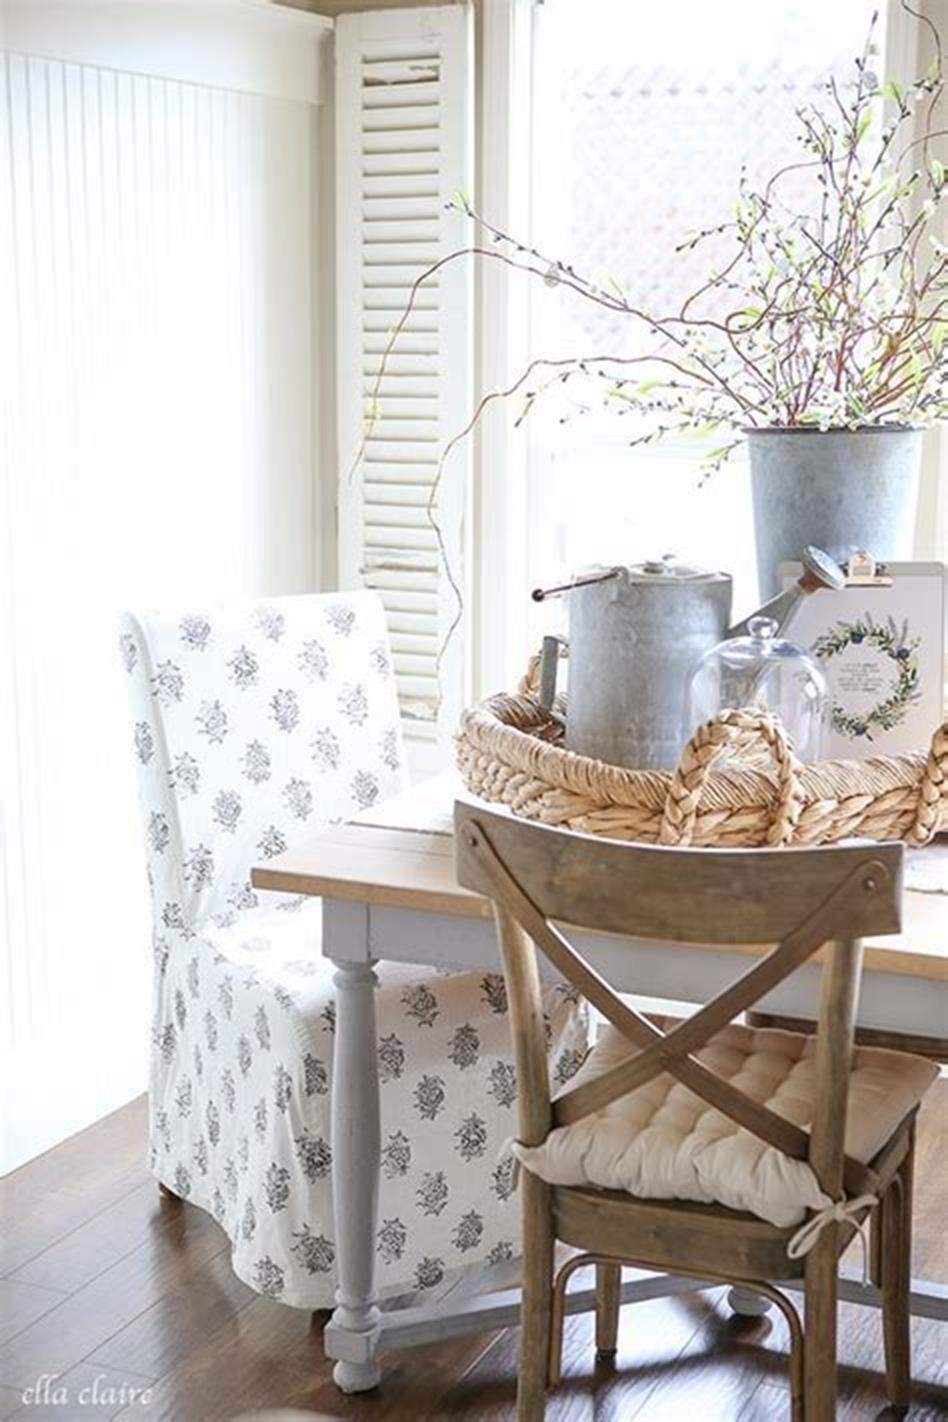 37 Beautiful Farmhouse Spring Decorating Ideas On a Budget for 2019 11